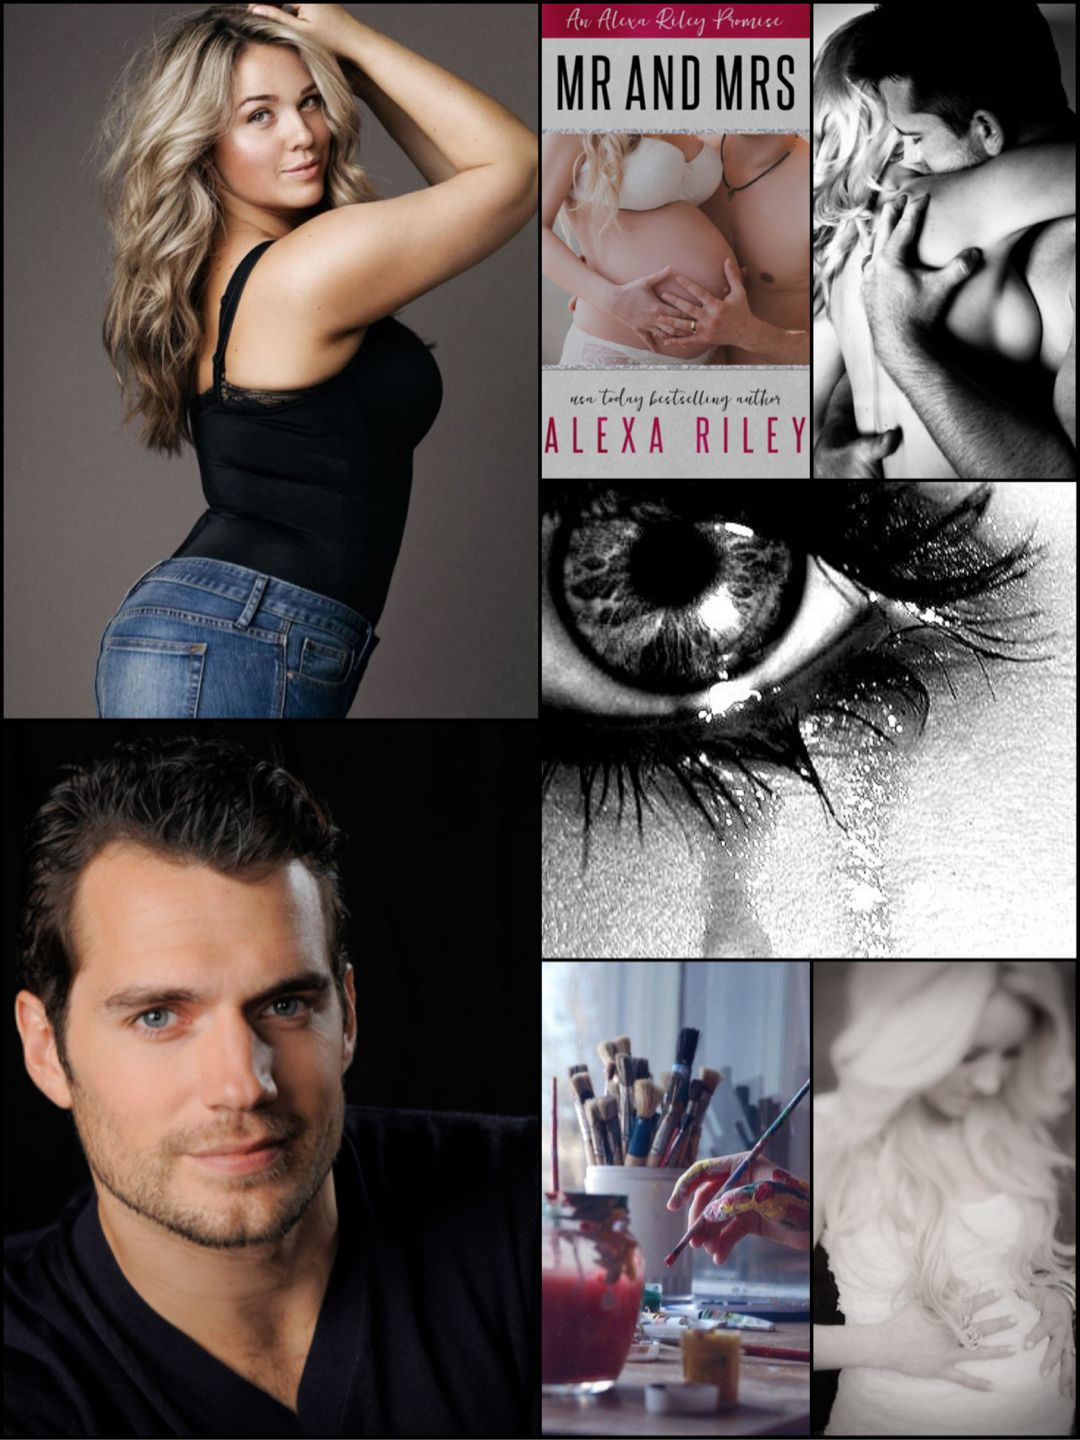 MR AND MRS by Alexa Riley